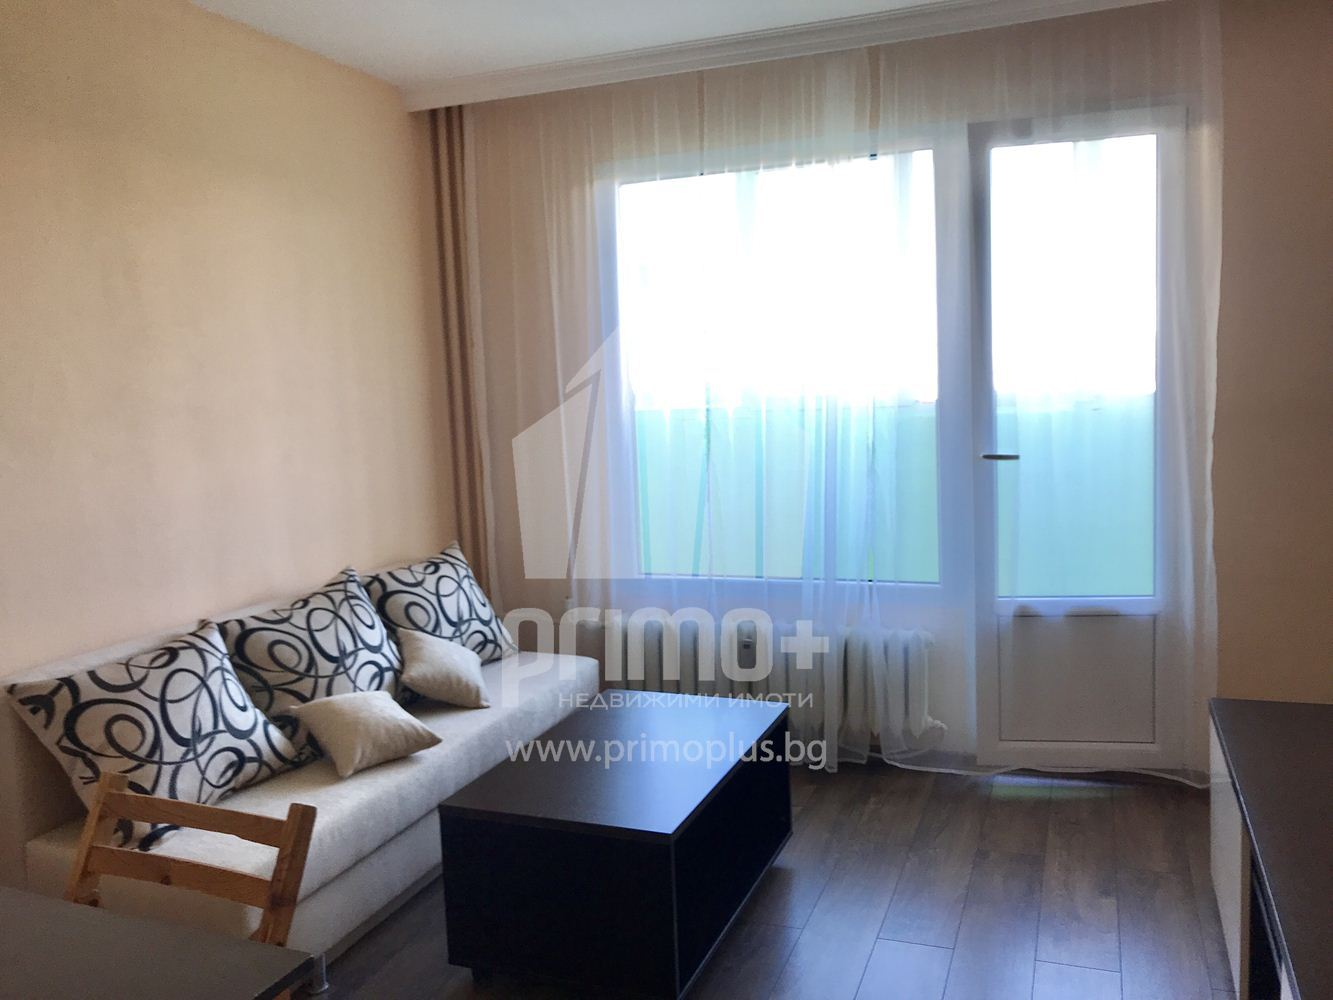 For Rent, 2- bedroom, Mladost 2, Sofia, Bedrooms, ,1 BathroomBathrooms,For Rent,4